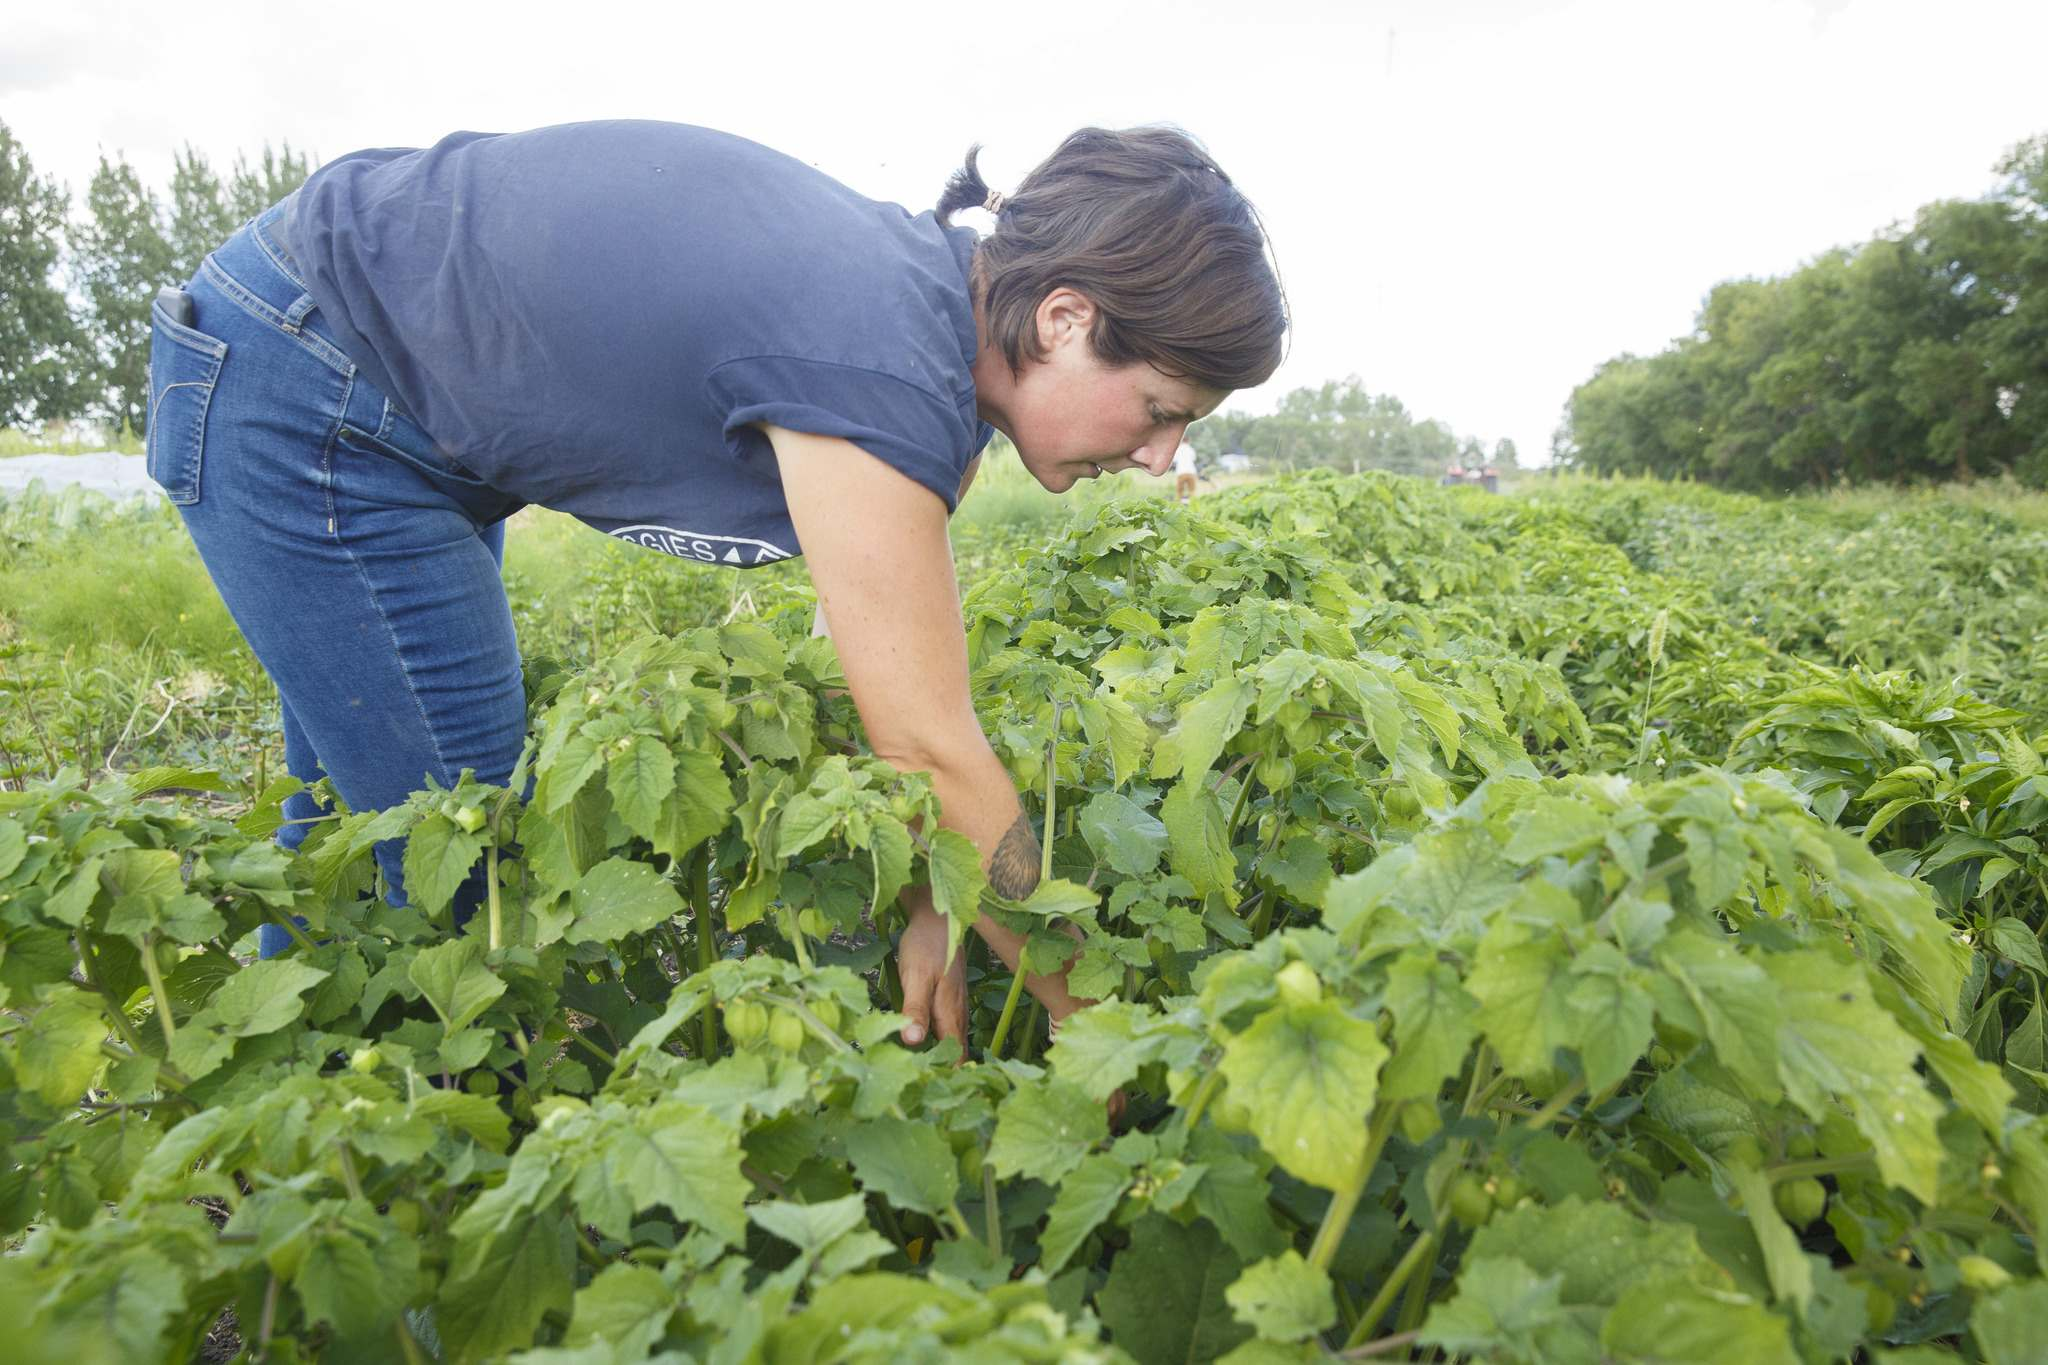 Britt tends to the vegetable patch.</p>